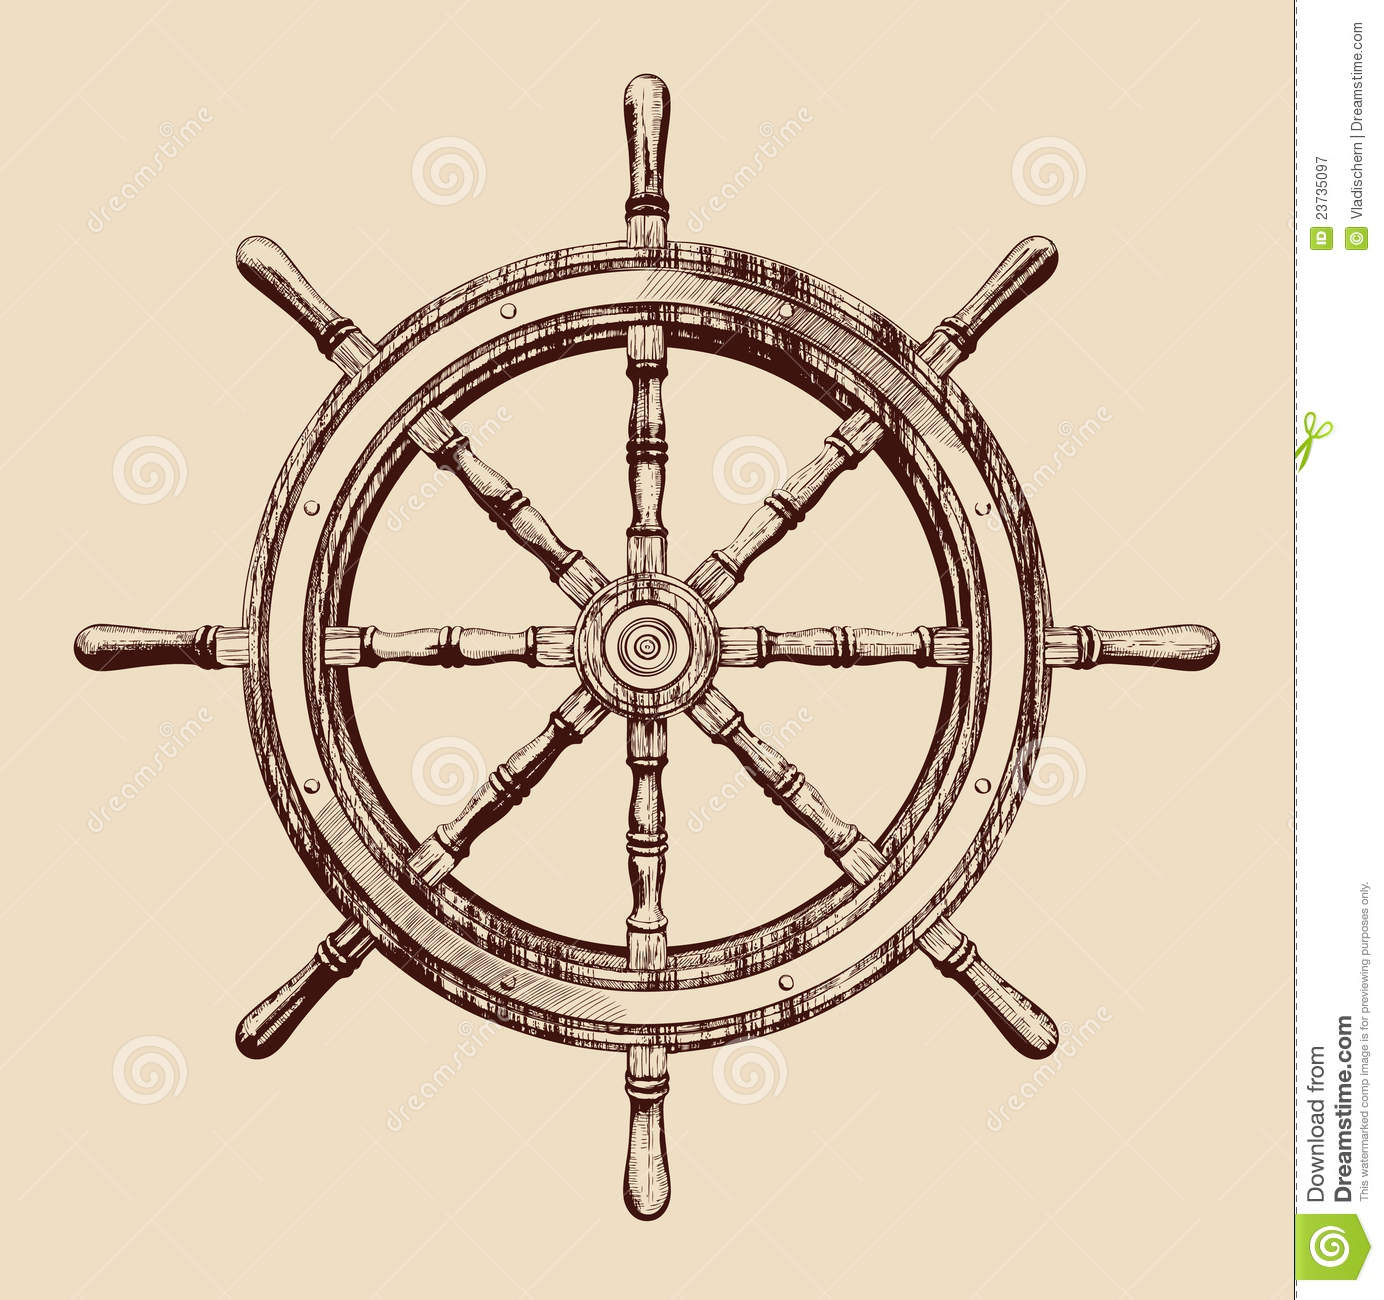 hight resolution of ships wheel diagram wiring diagram for you container ship diagram ship wheel stock vector illustration of